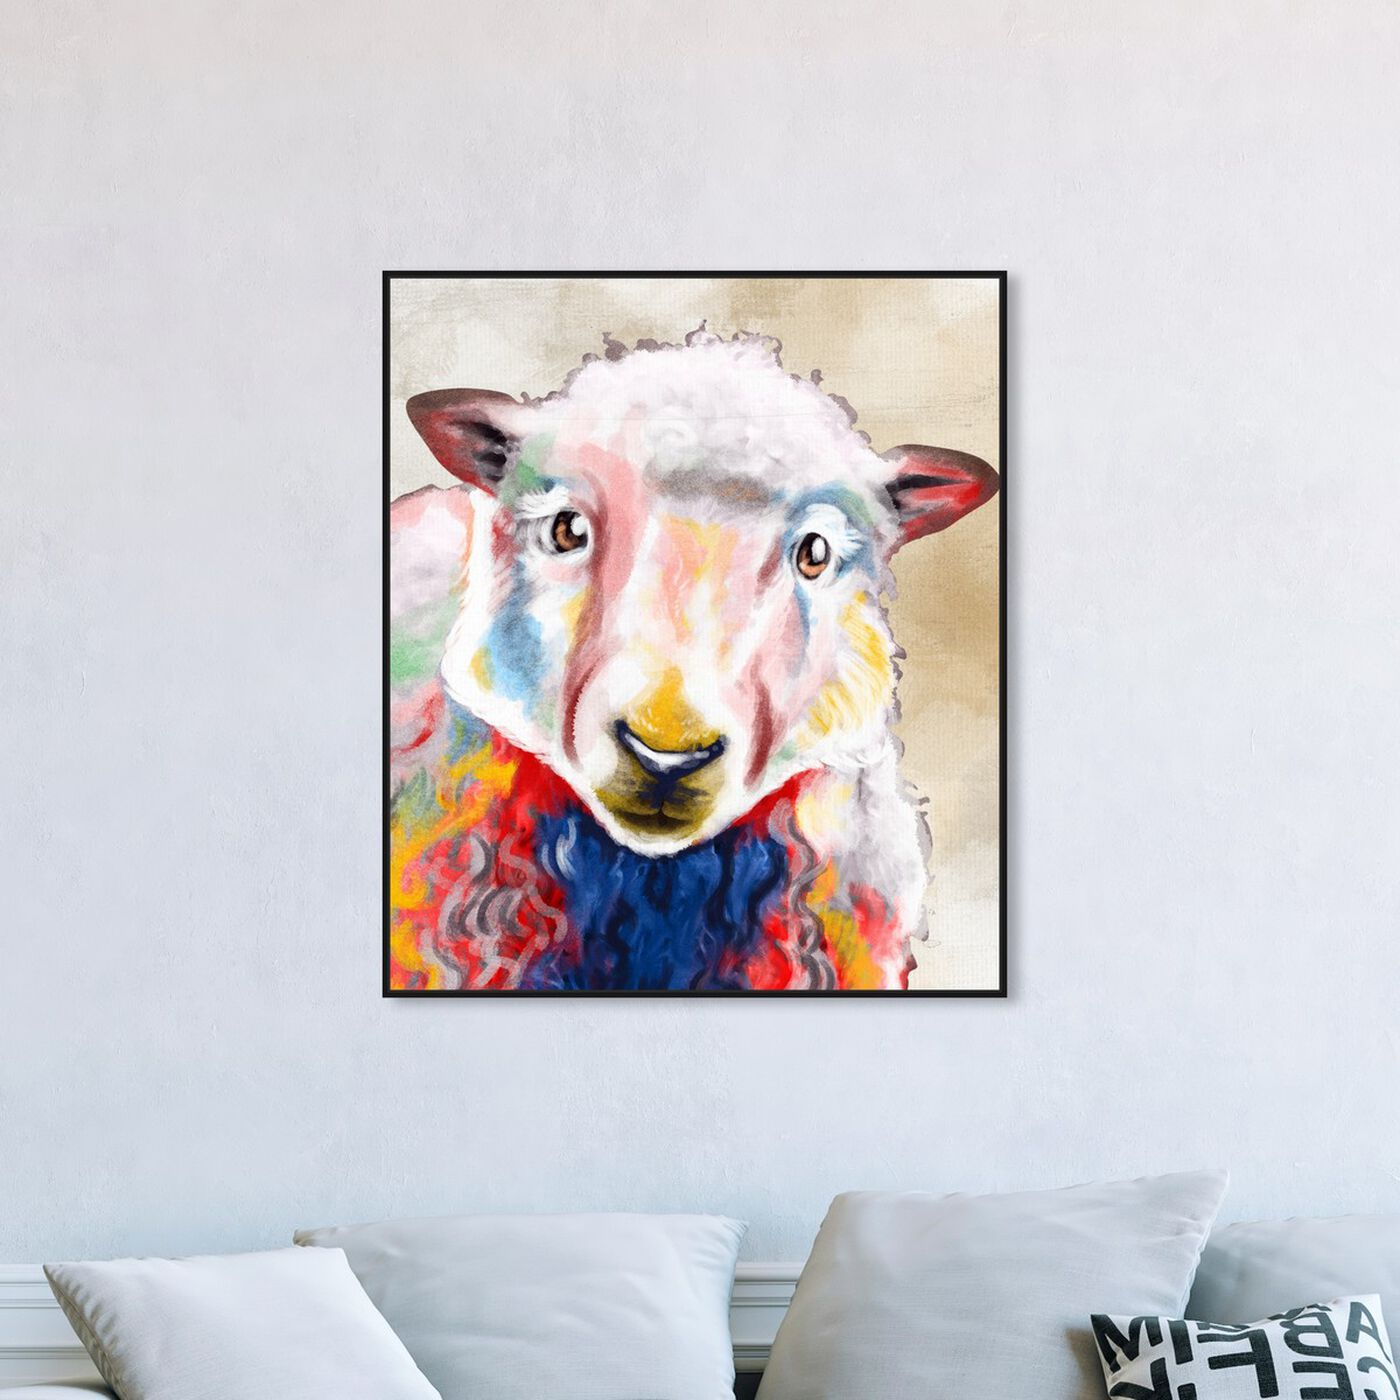 Hanging view of Color Splash Sheep featuring animals and farm animals art.